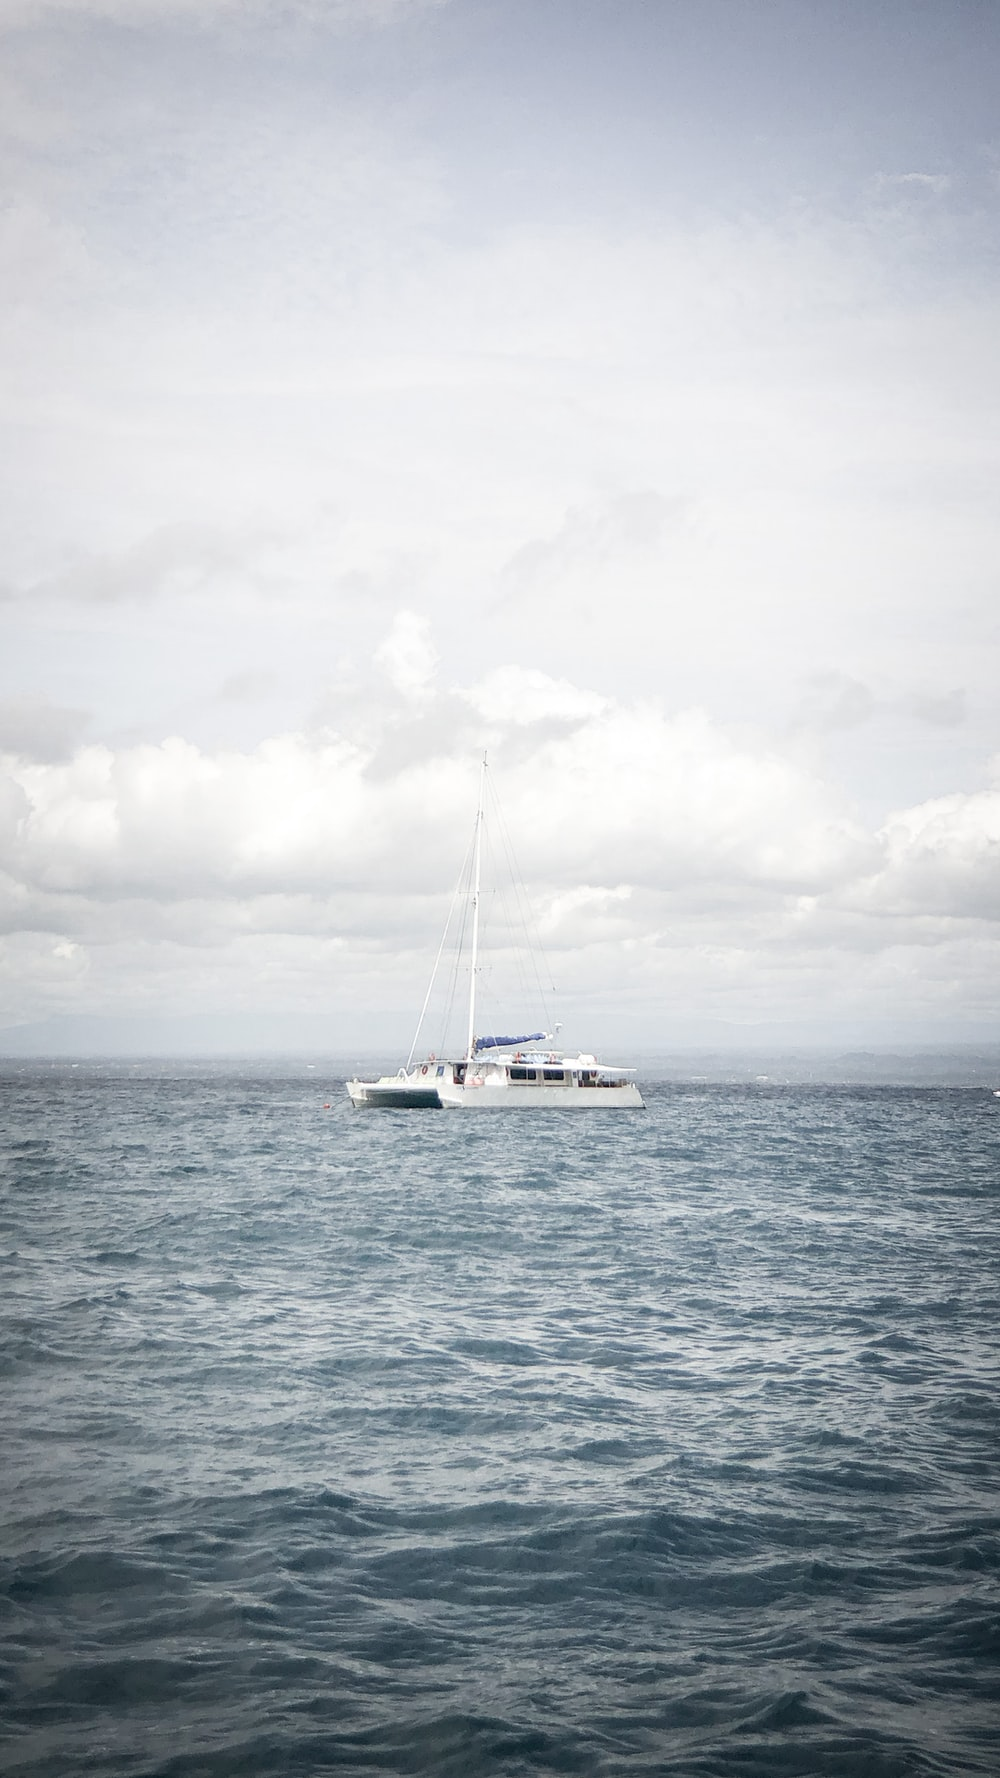 white boat on sea under white clouds during daytime